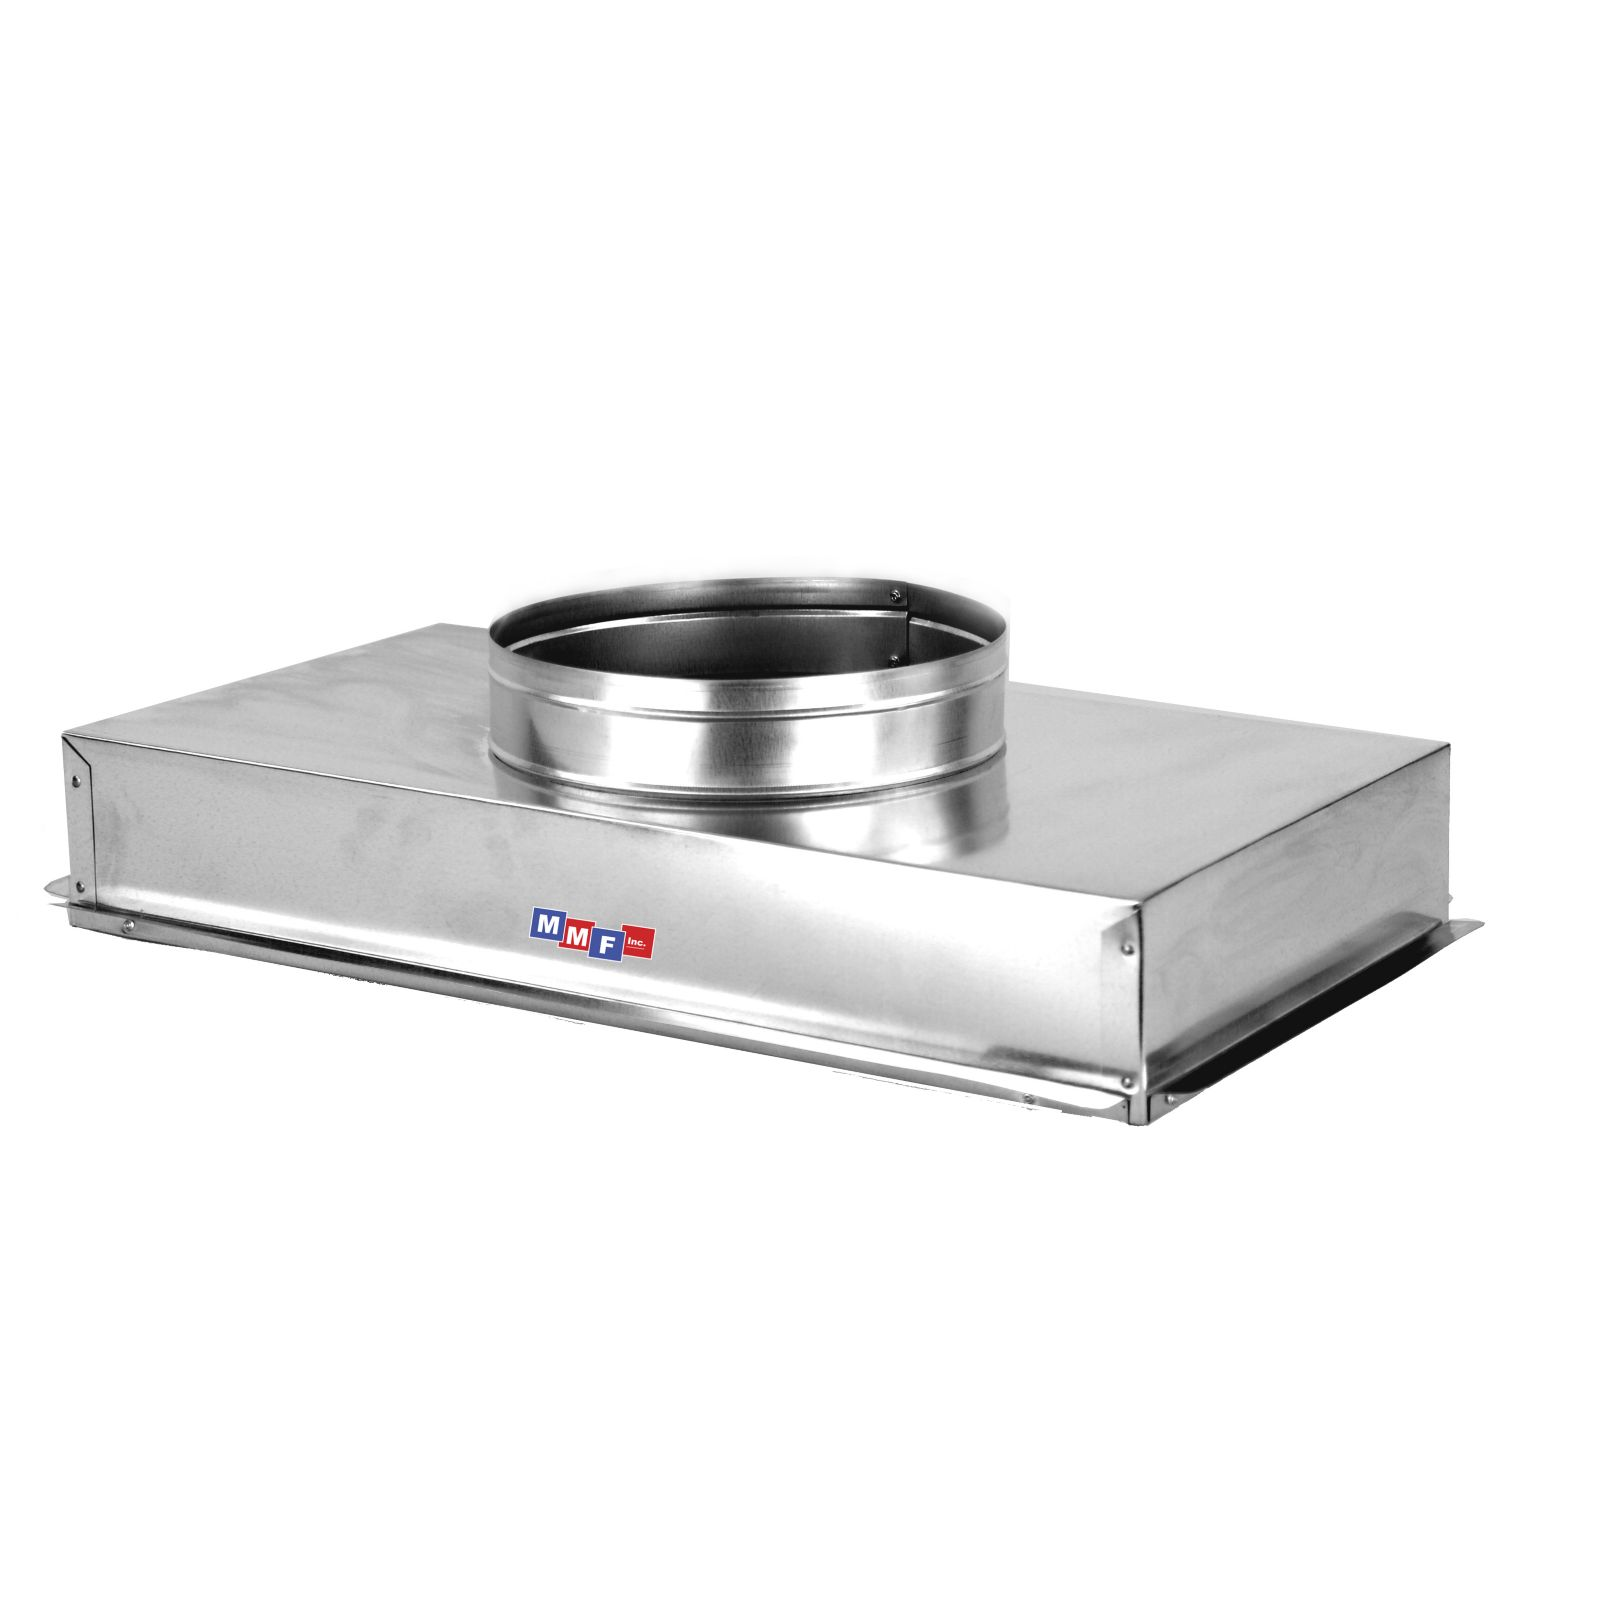 "Modular Metal ACRH3014AS - Return Air Can - 28 Gauge - Raw - Seal All Seams30 1/4"" X 14 1/4"" Uninsulated - 4"" High"